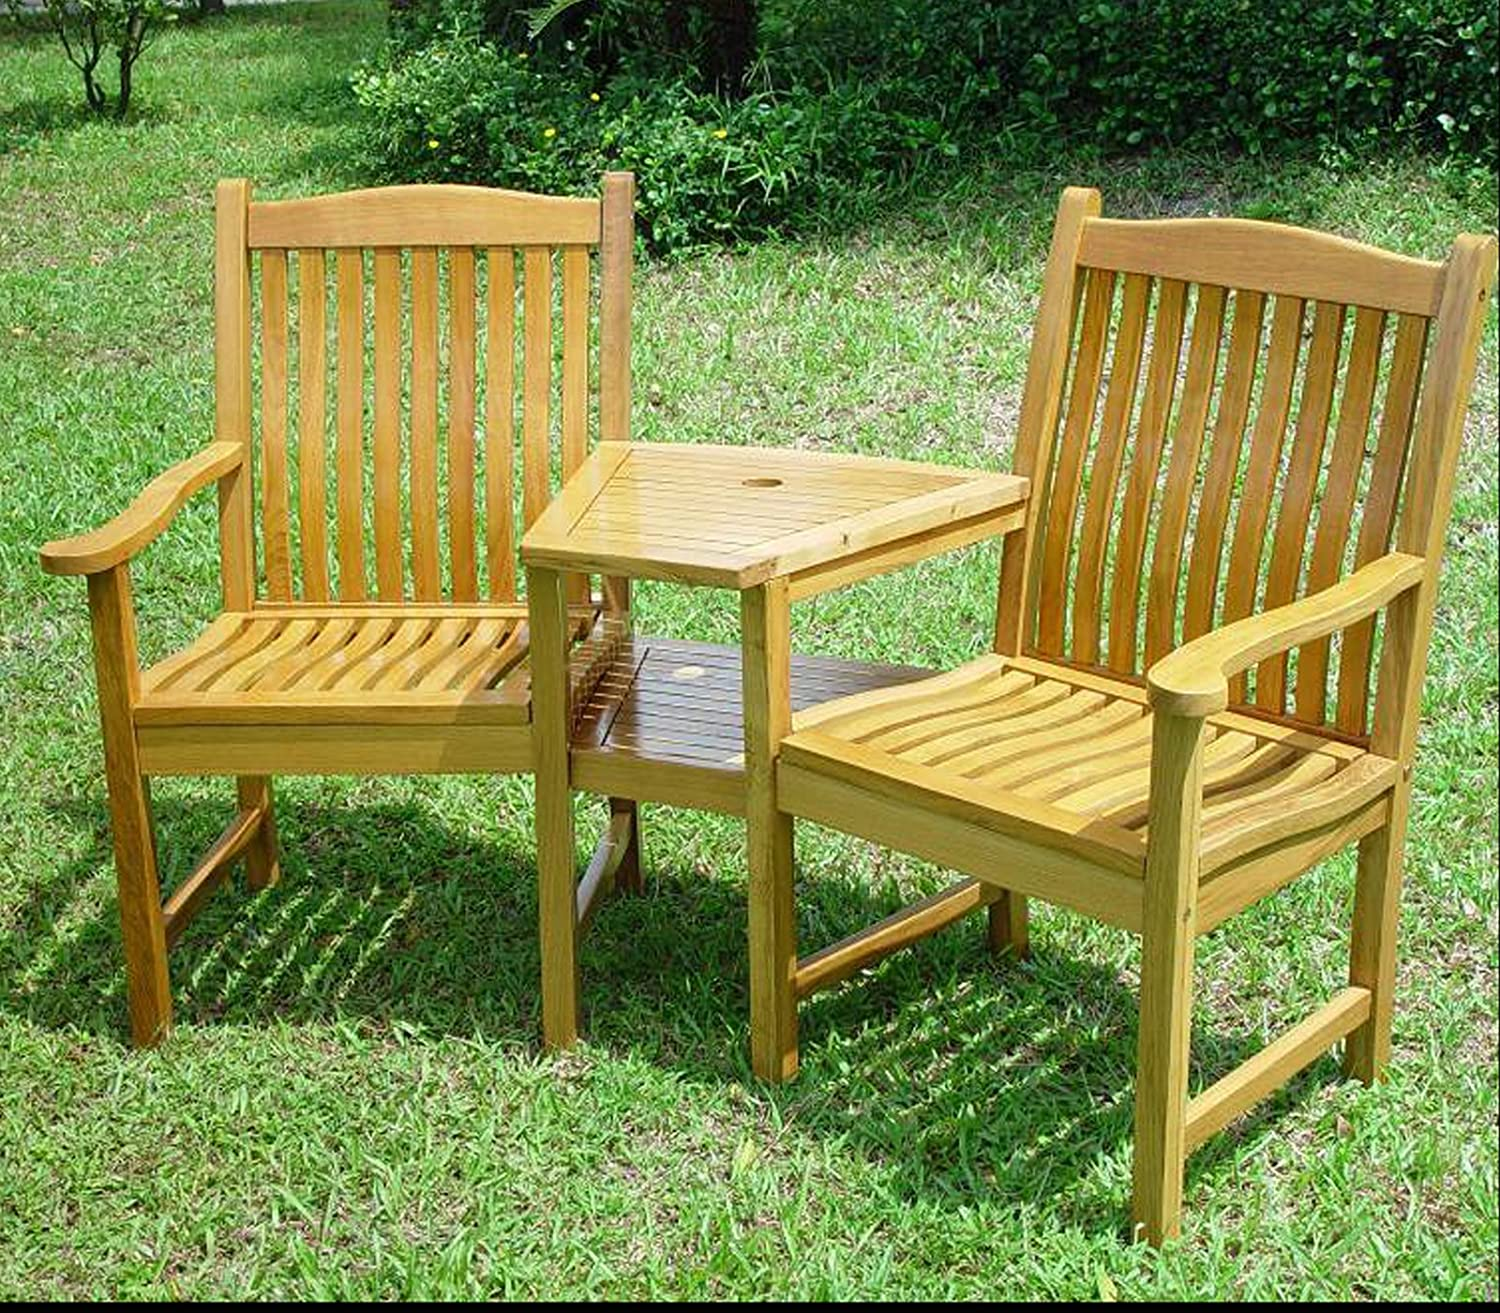 solid oak garden love seat sale sale sale amazoncouk garden outdoors - Wooden Garden Furniture Love Seats